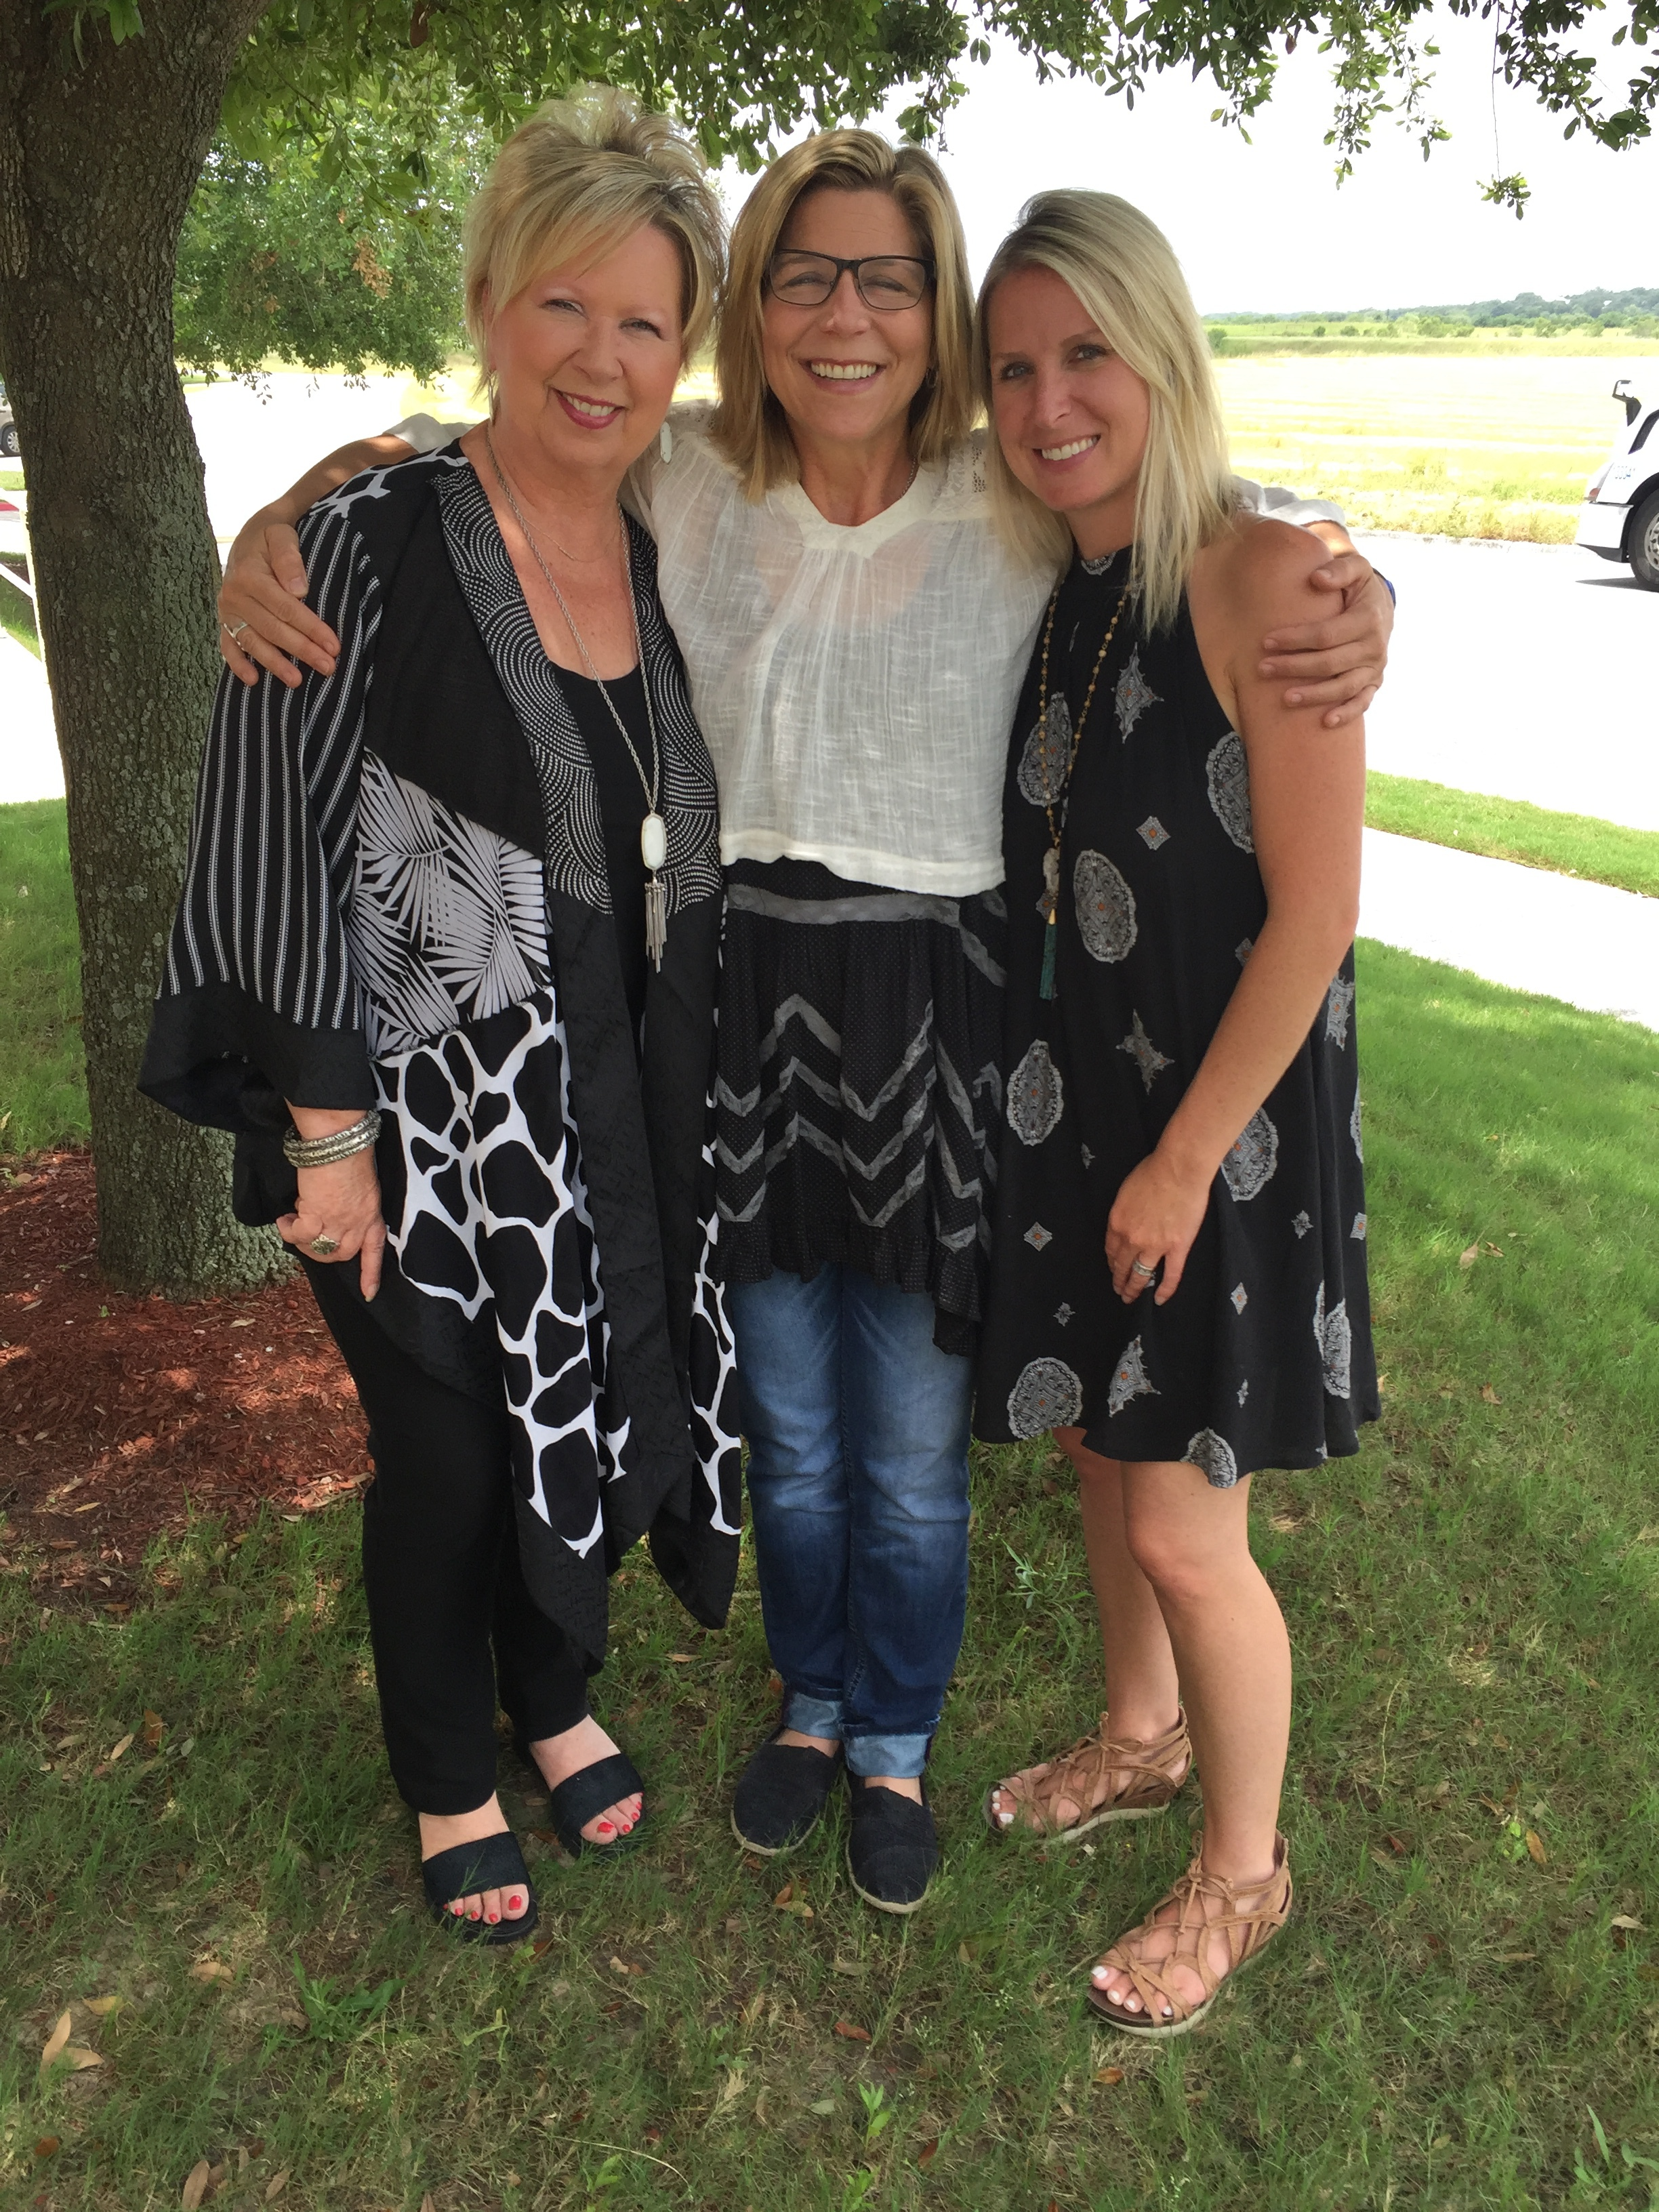 we donated to Terri HEndrix foundation, oyou for the annual women's retreat.